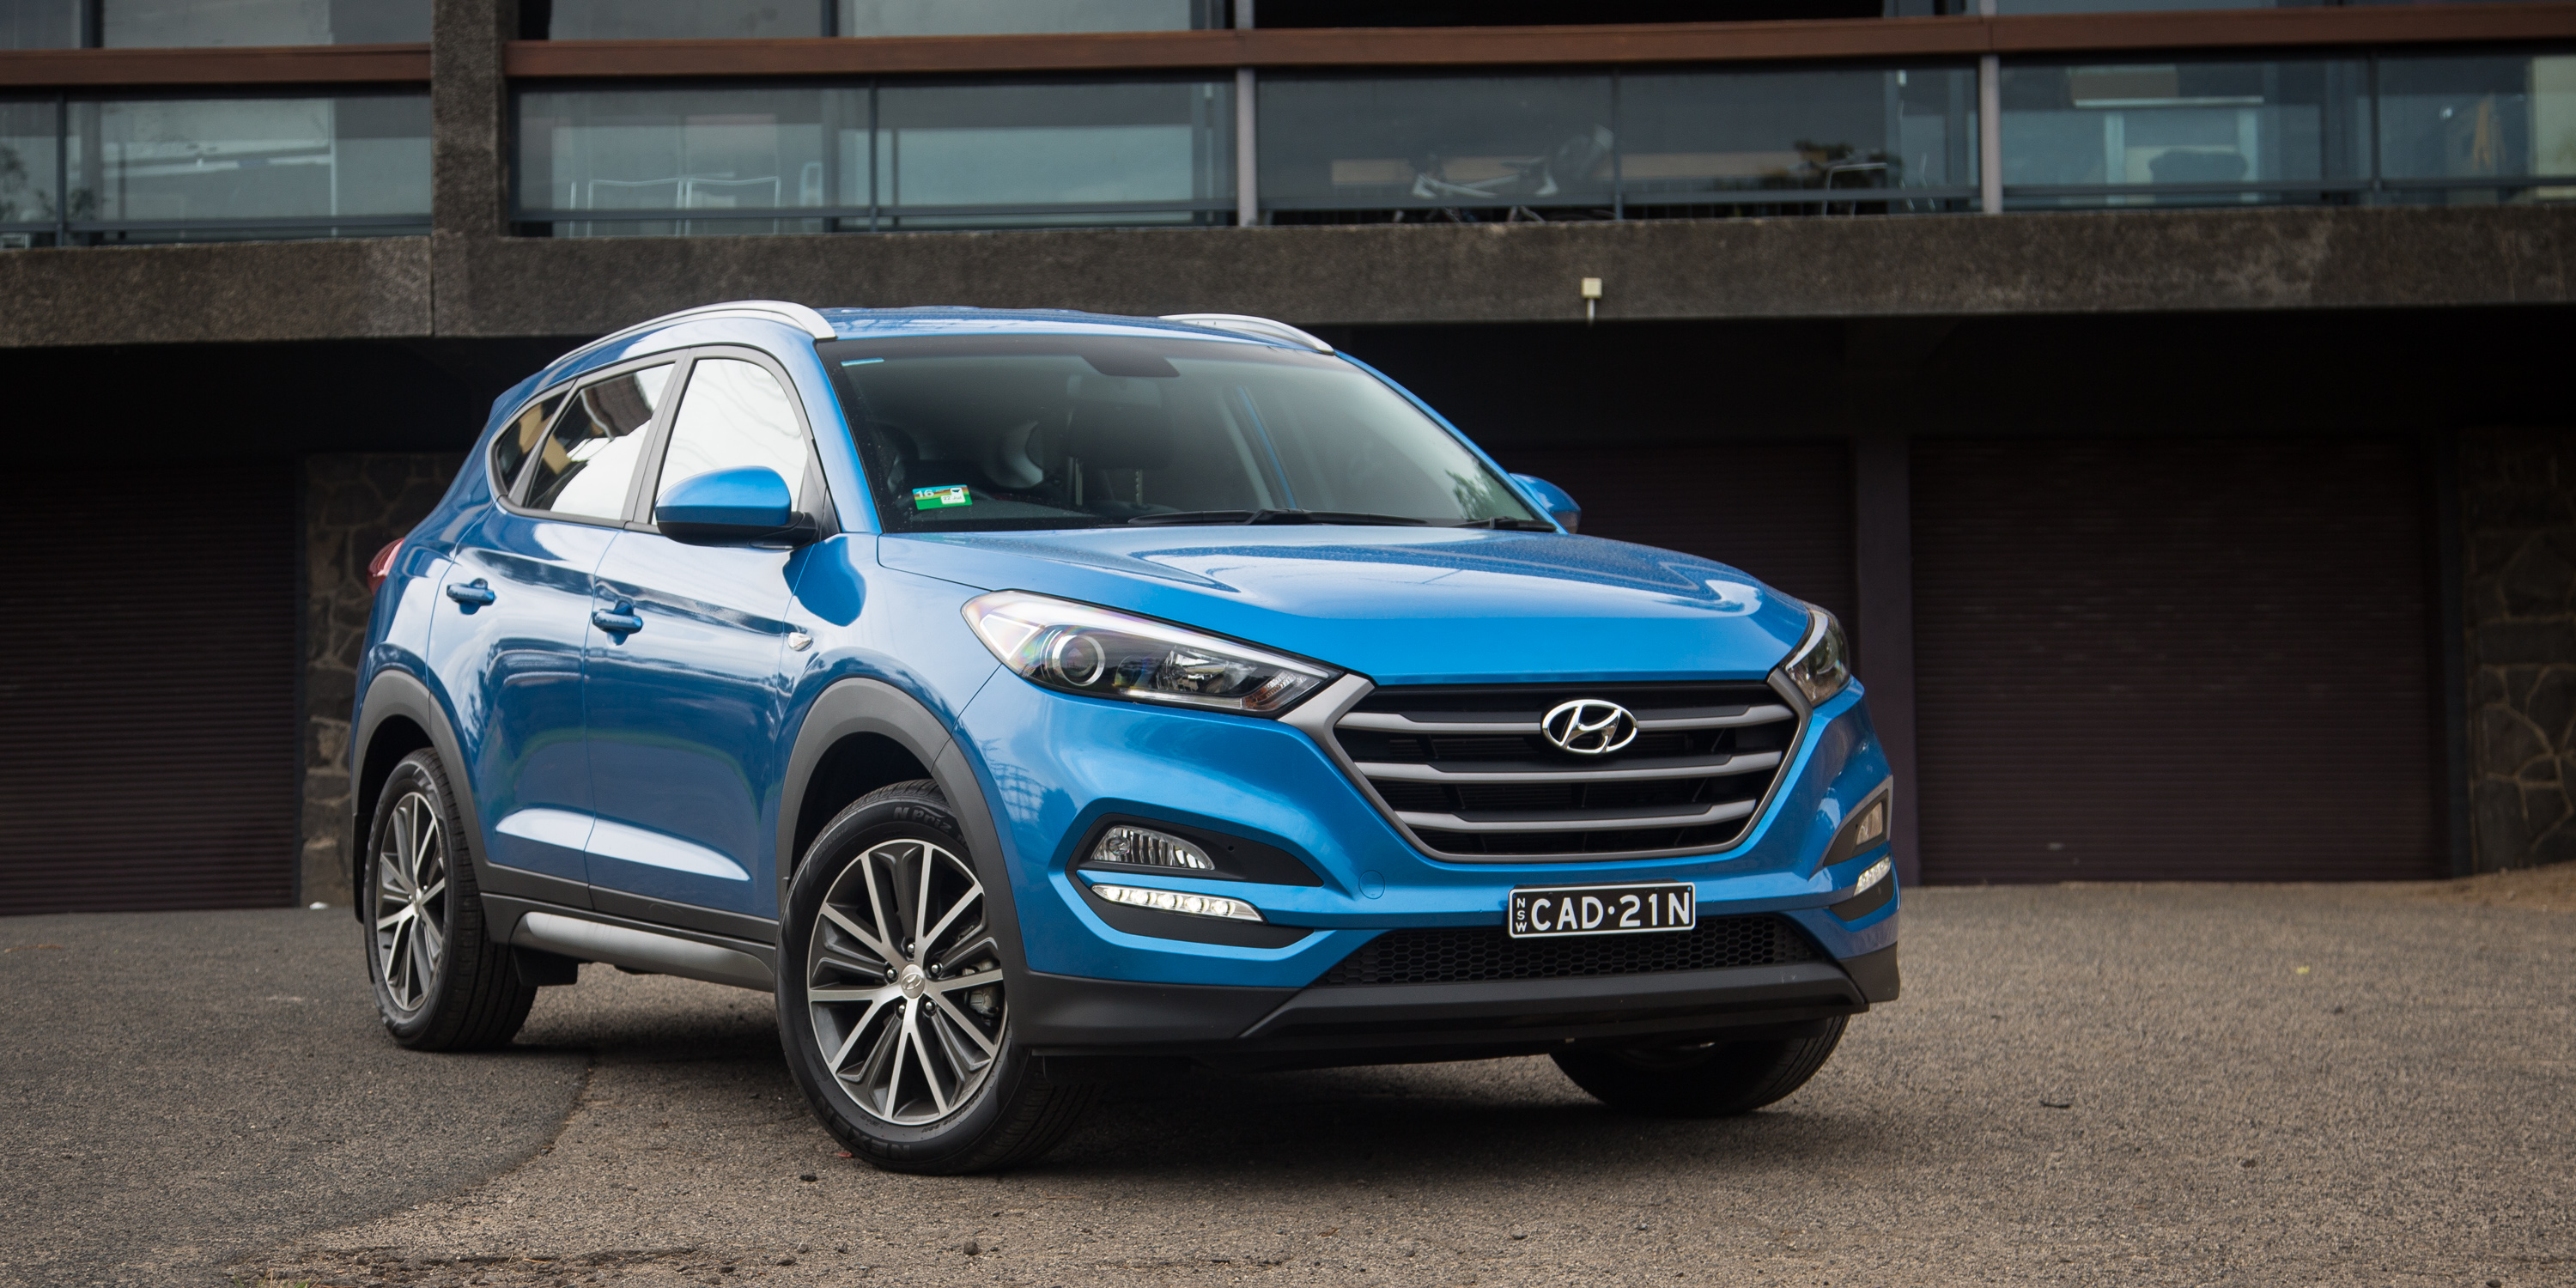 2016 hyundai tucson active x review long term report two caradvice. Black Bedroom Furniture Sets. Home Design Ideas